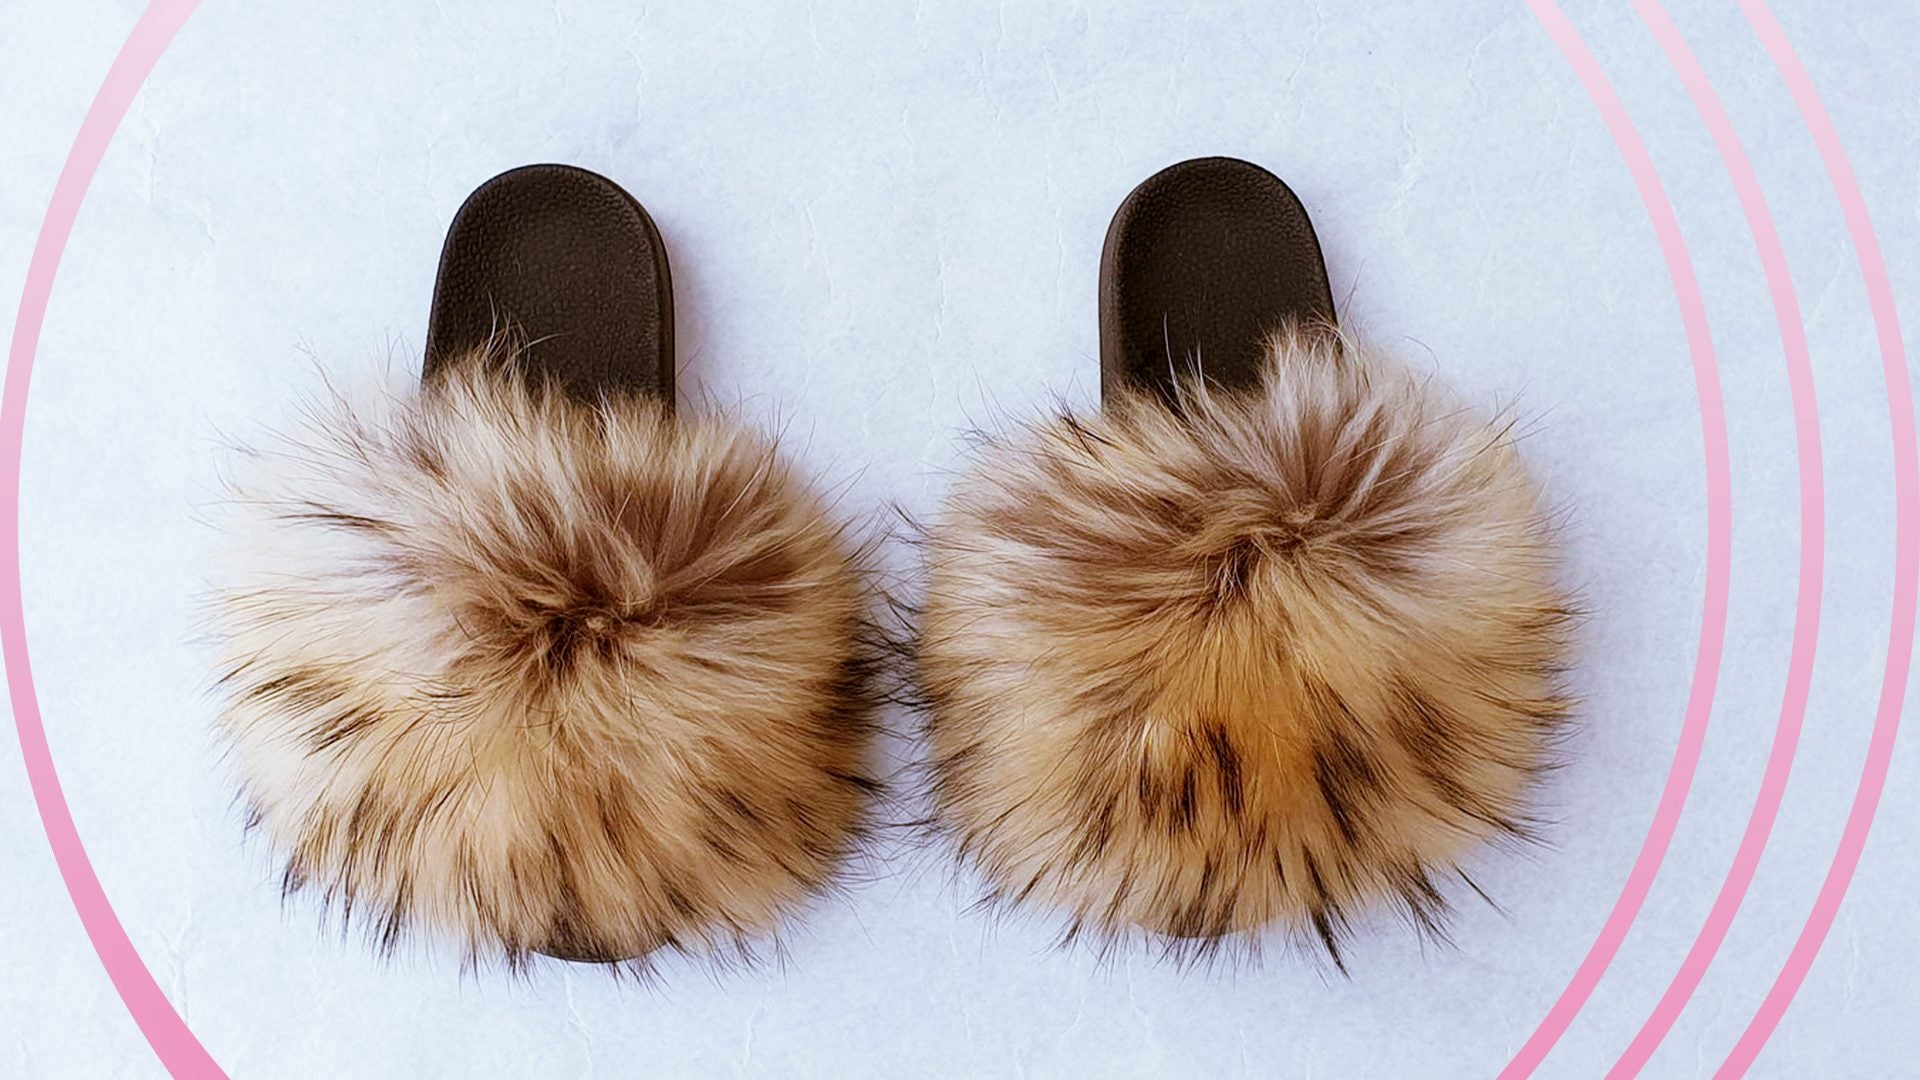 Trend Watch: The Chic And Comfy Fur Slippers We're Seeing Everywhere